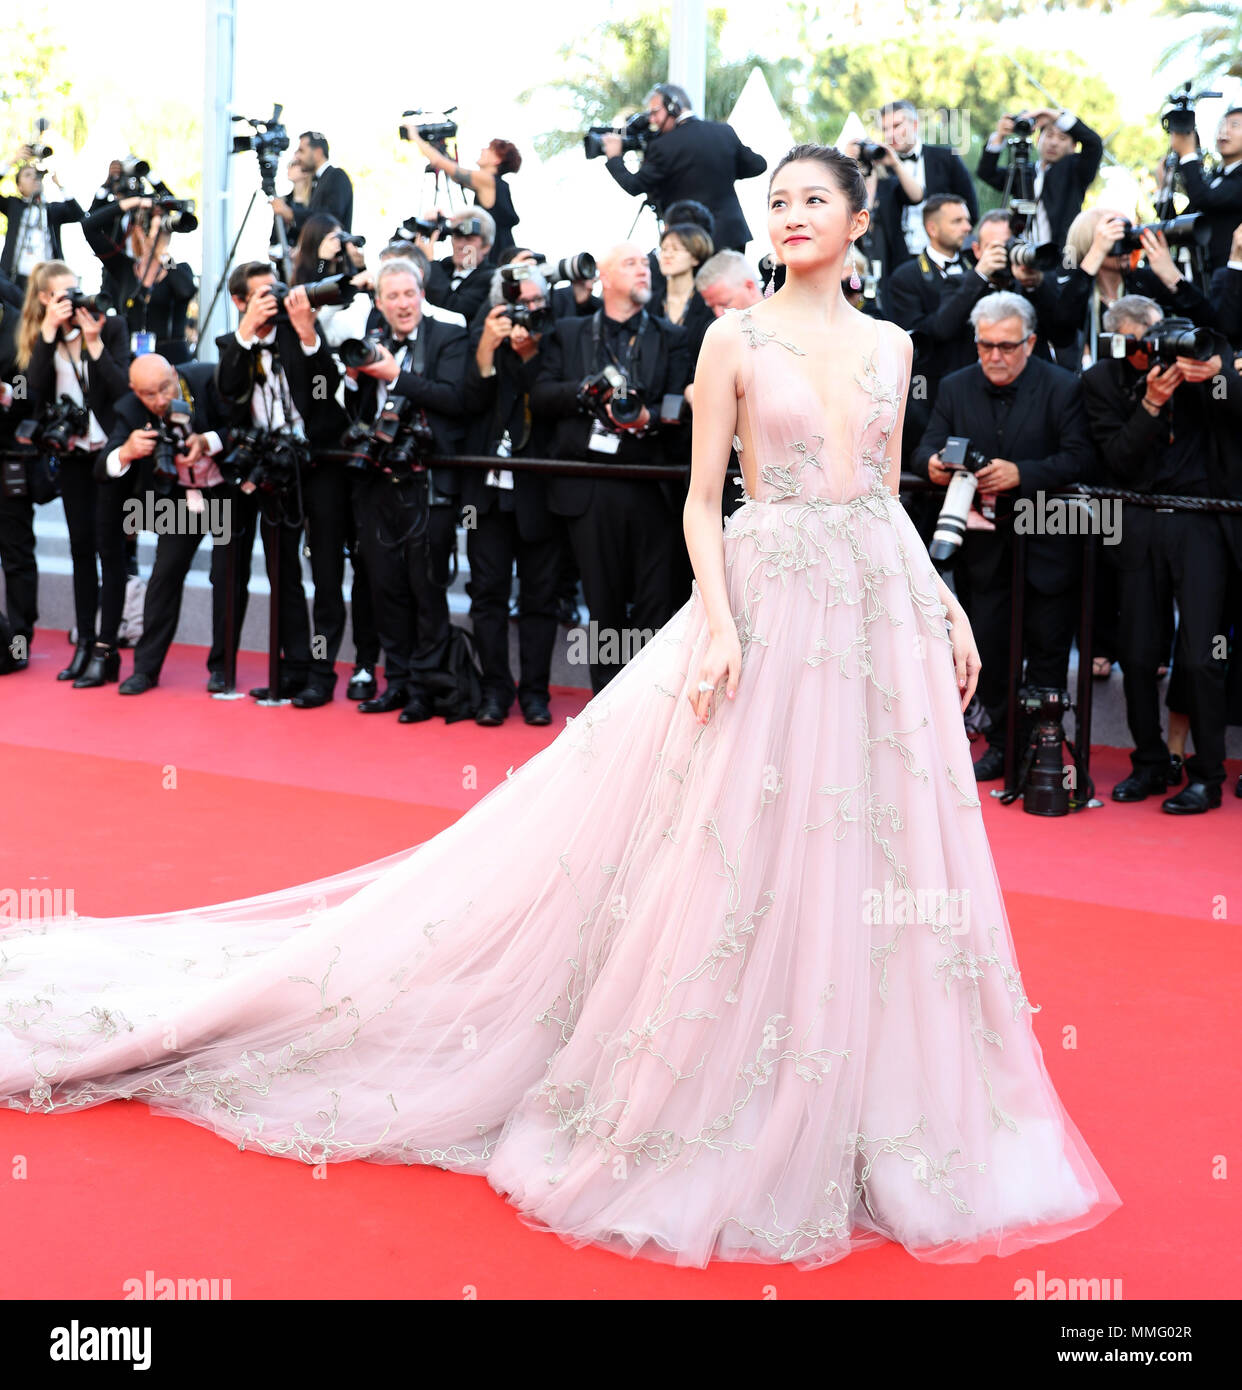 """Cannes, France. 11th May, 2018. Chinese actress Guan Xiaotong poses on the red carpet before the premiere of the film """"Ash Is Purest White"""" at the 71st Cannes Film Festival in Cannes, France, on May 11, 2018. The 71st Cannes Film Festival is held here from May 8 to May 19. Credit: Luo Huanhuan/Xinhua/Alamy Live News Stock Photo"""